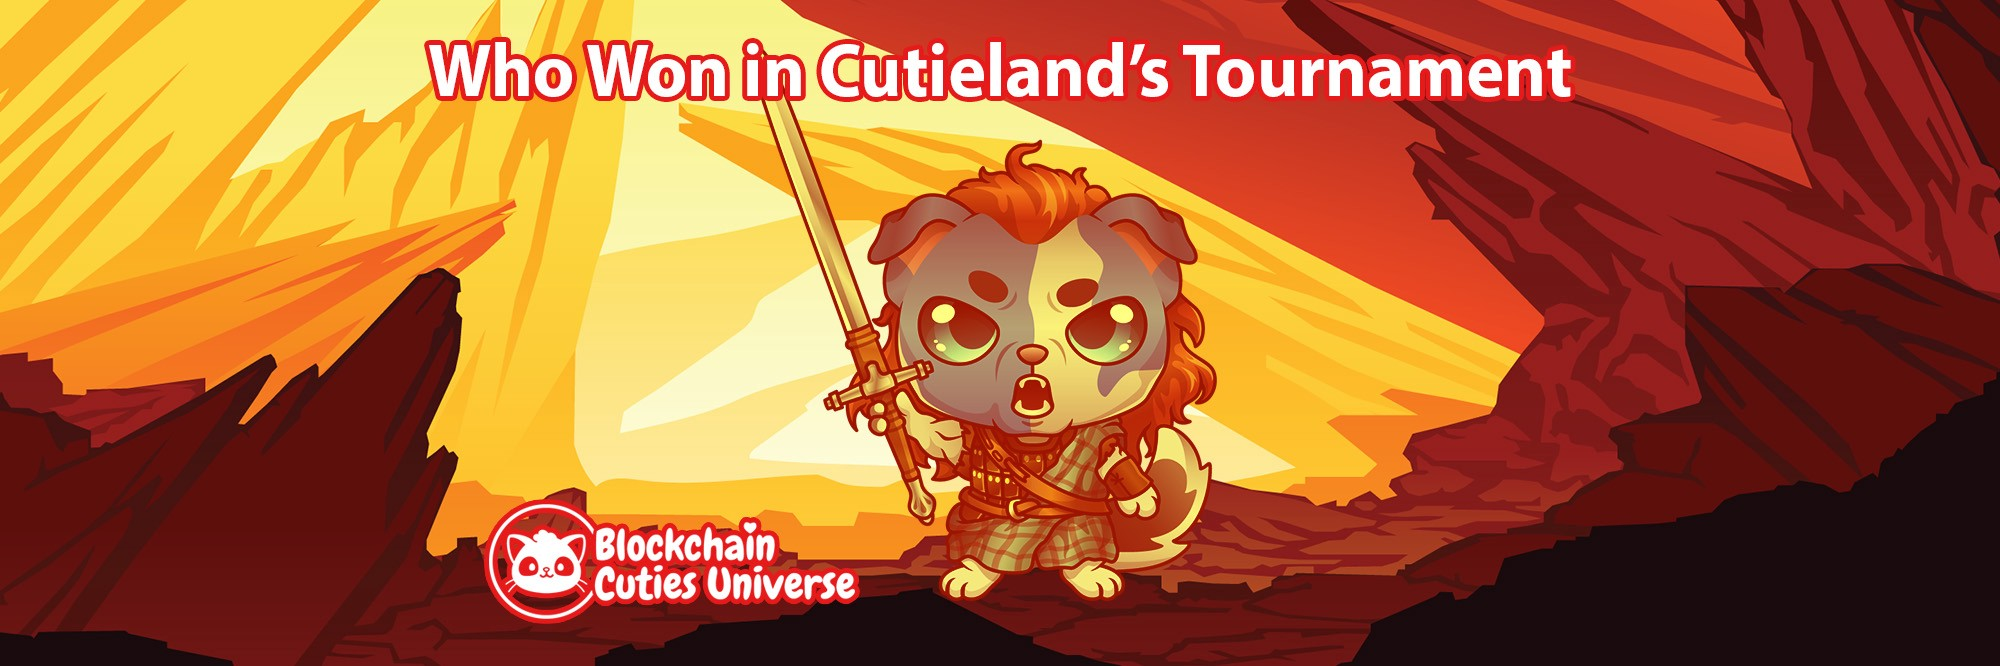 [Blockchain Cuties Universe] First Tournament: Strongest Cuties in the Land